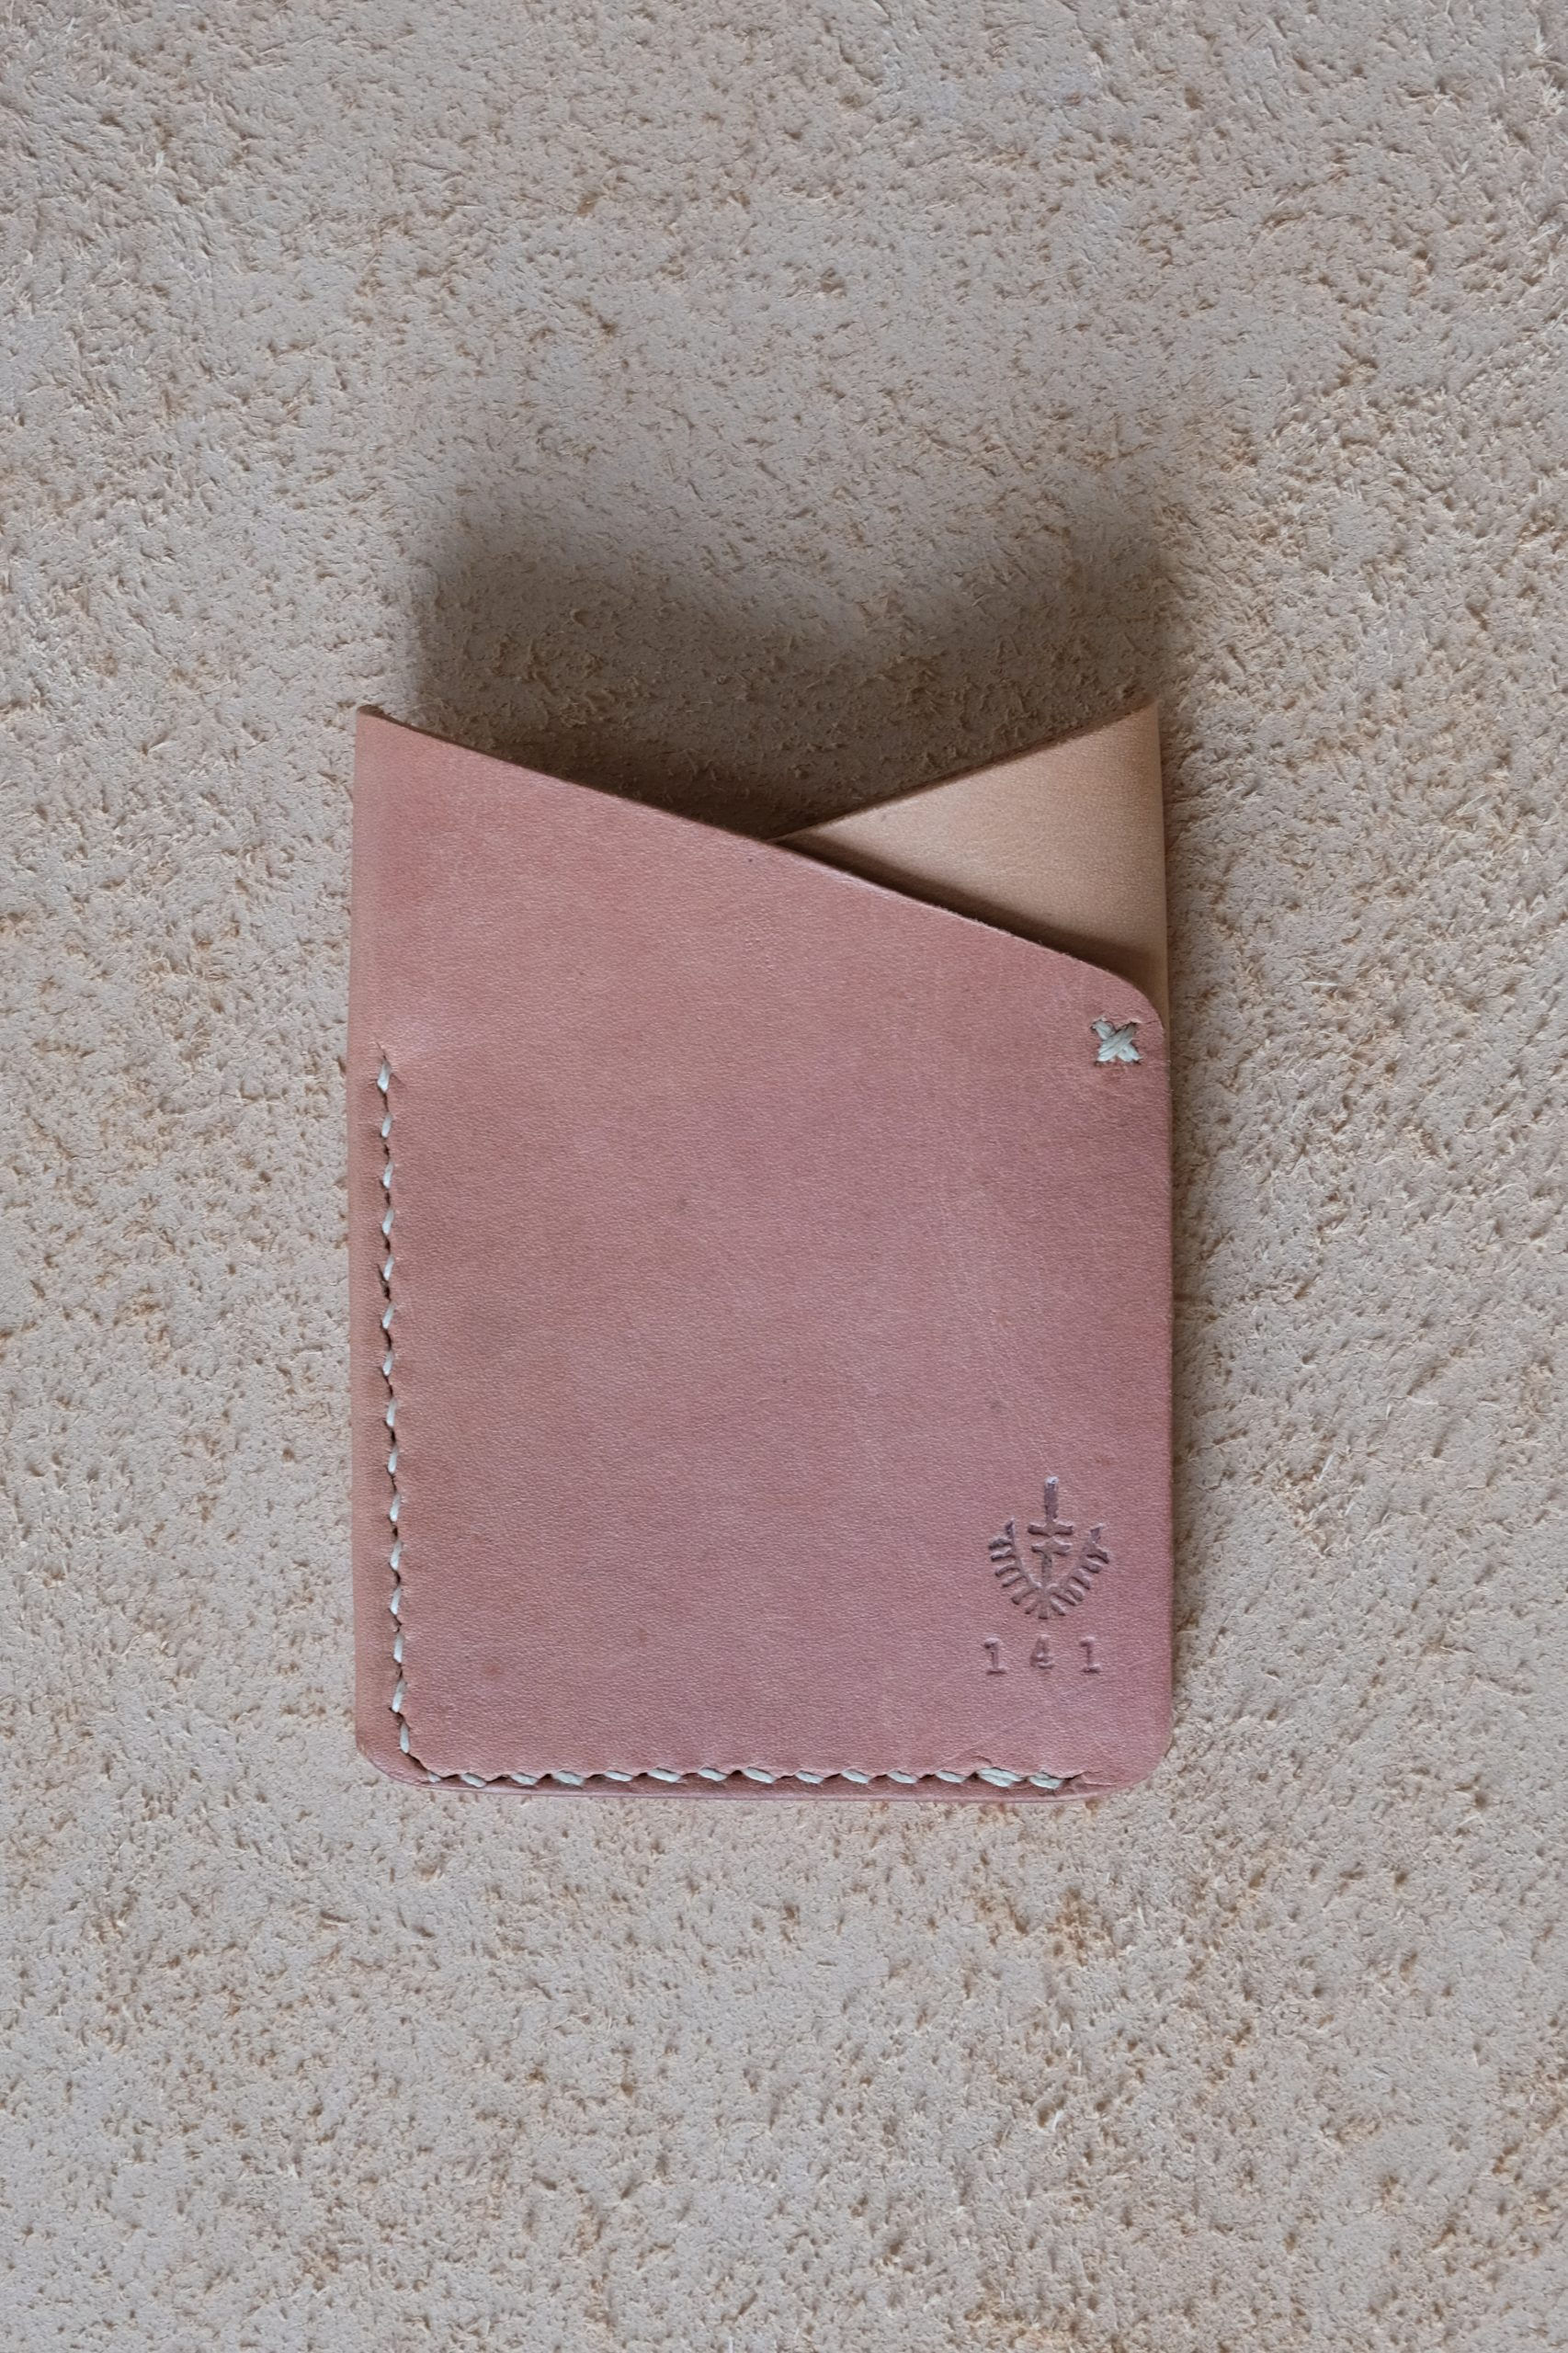 lerif designs leather fox ears cardholder in red beet on beige background